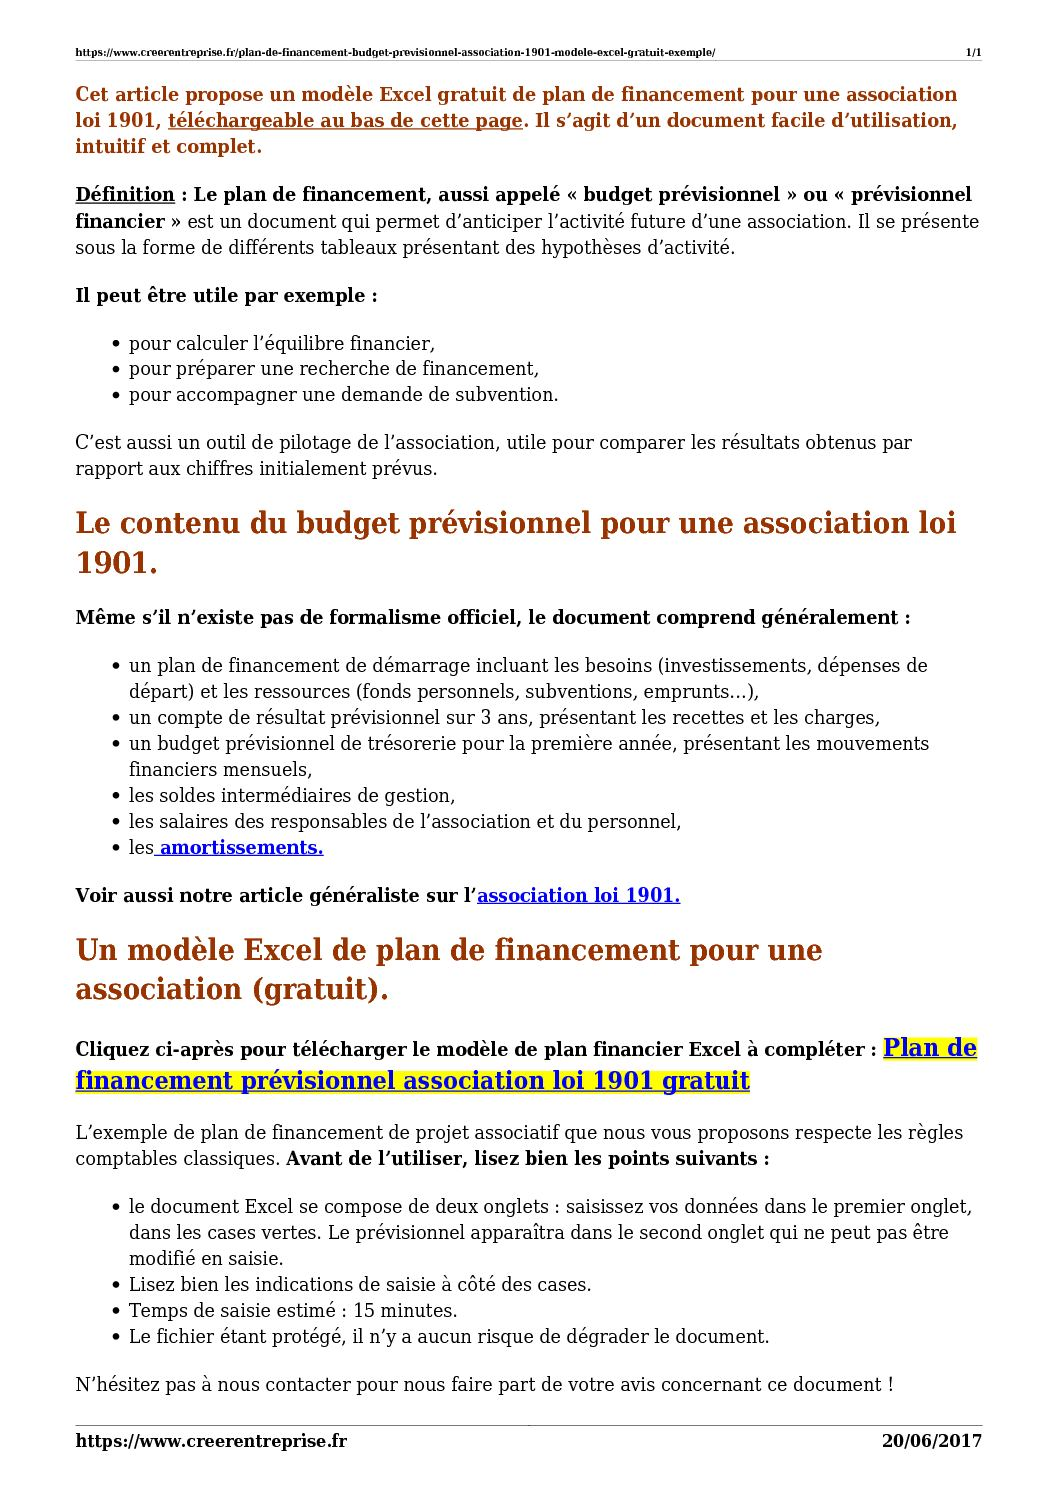 Calameo Plan De Financement Budget Previsionnel Association 1901